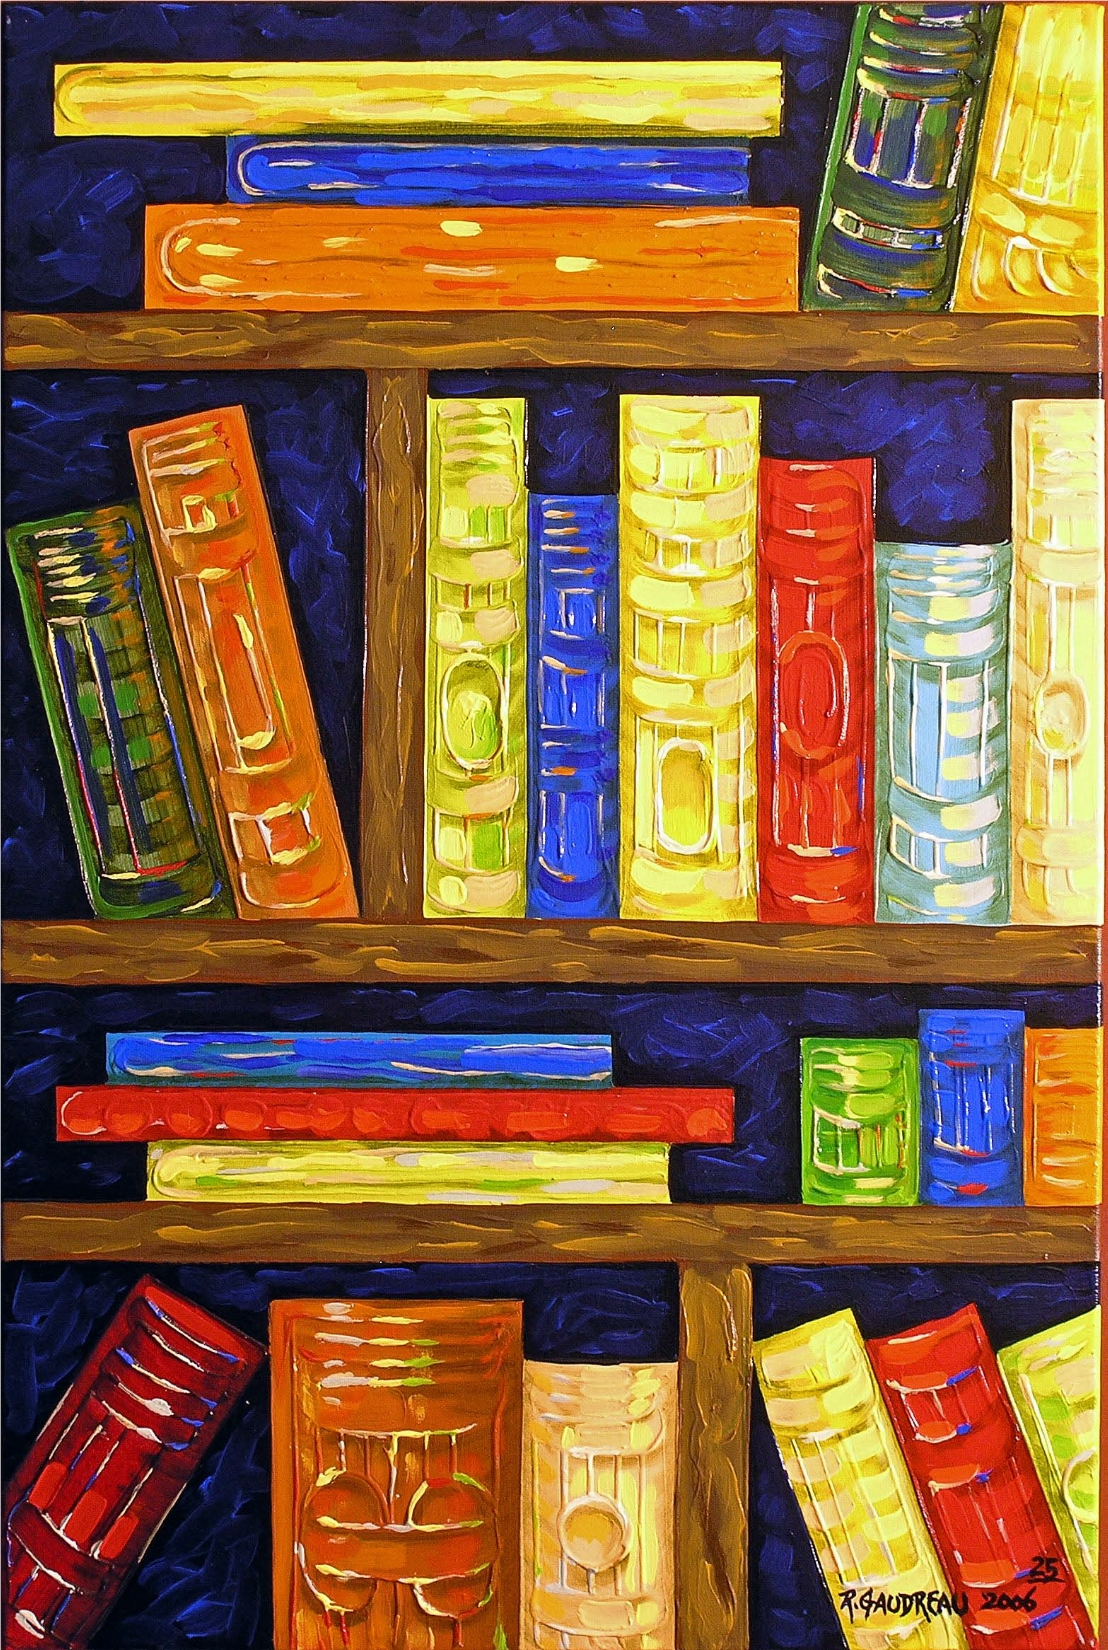 25  Books 2006 oil on canvas 36 x 24 inches